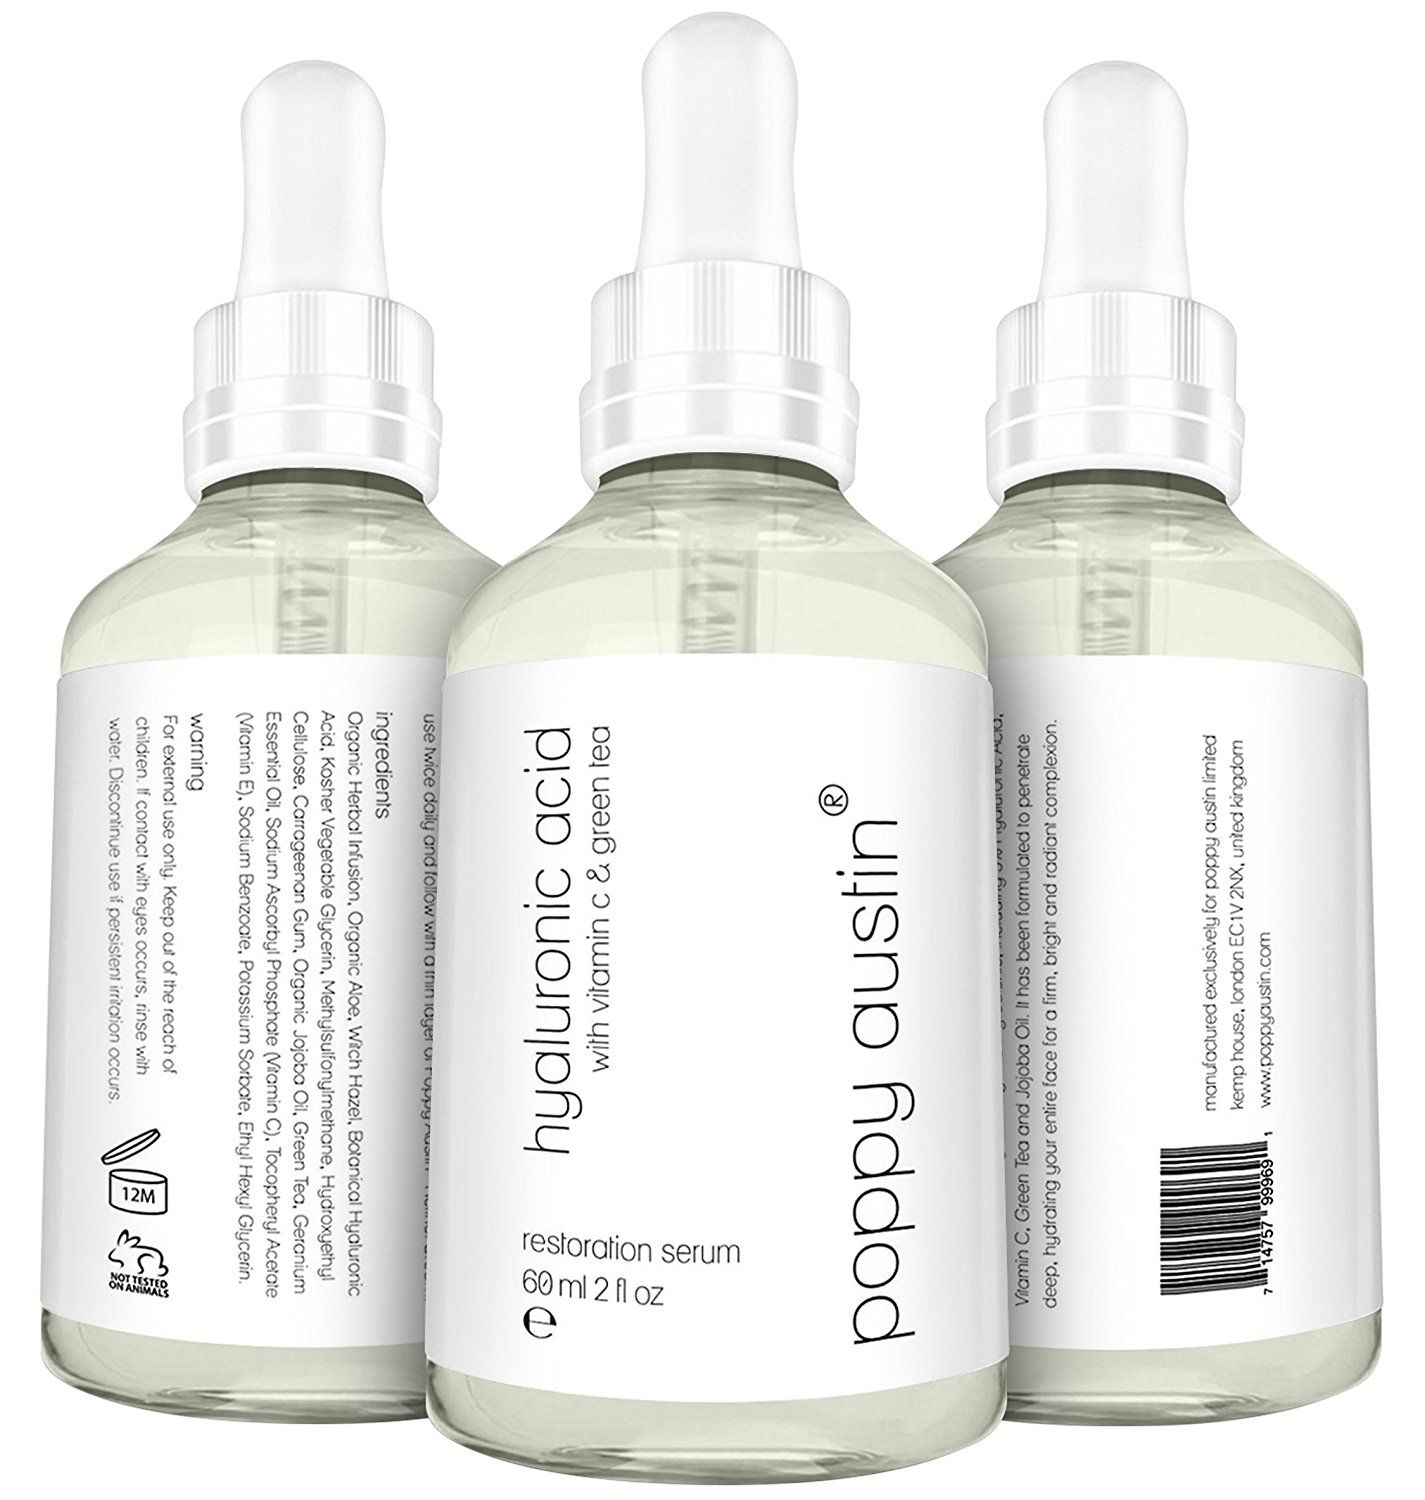 Poppy Austin Hyaluronic Acid Serum for Skin with Vitamin C, Green Tea and Jojoba Oil, 2 fl. oz * Startling review available here  : Face treatments and masks